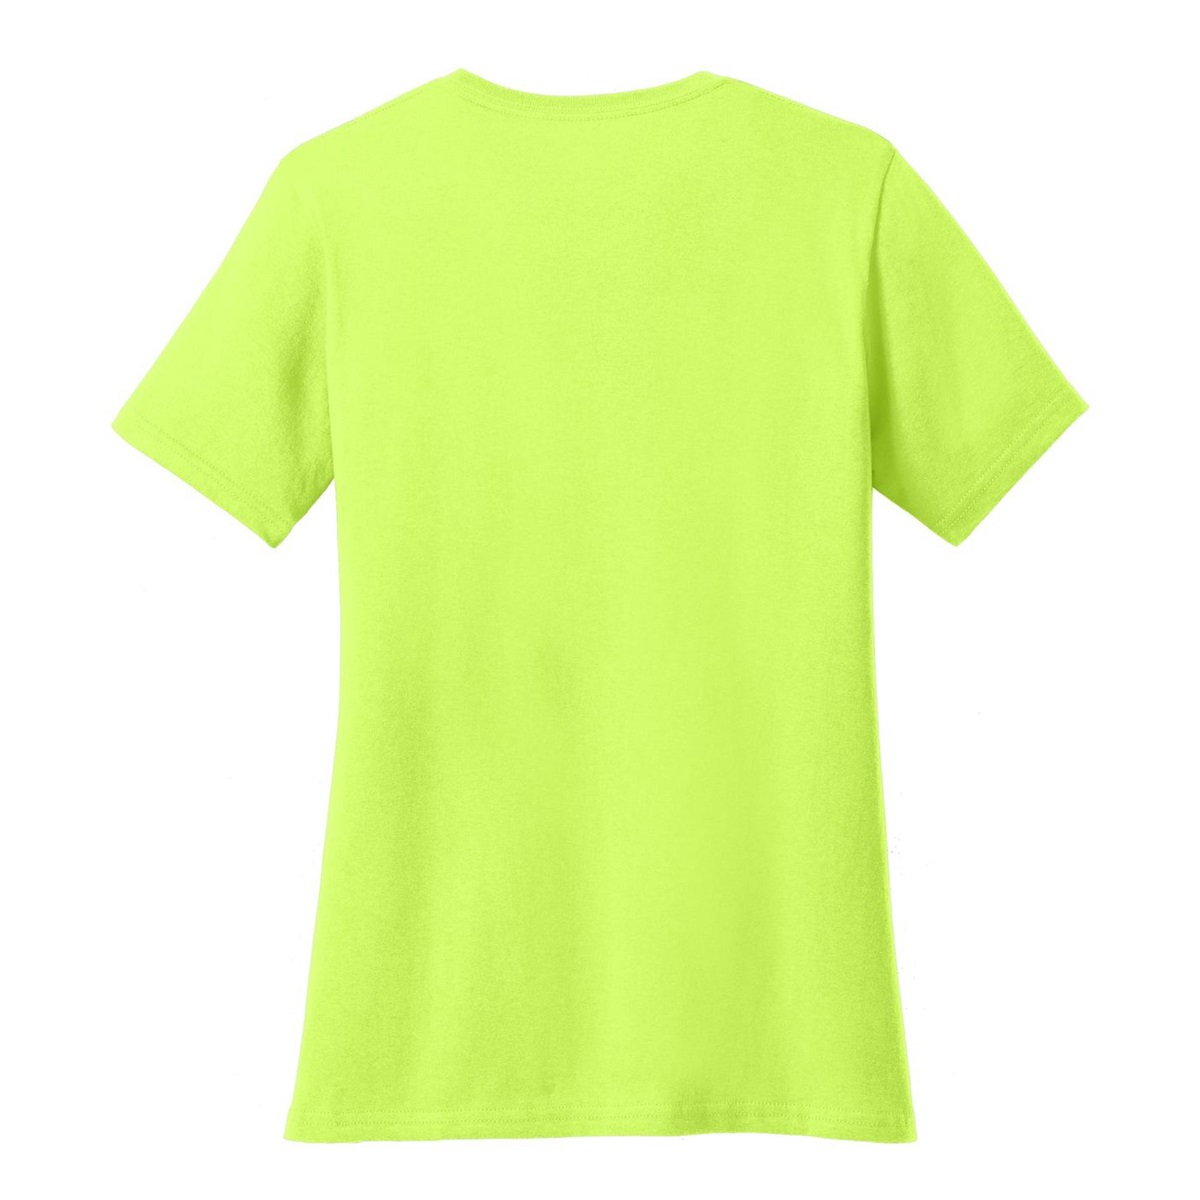 Port company lpc54 ladies 5 4 oz cotton t shirt neon for Bulk neon t shirts